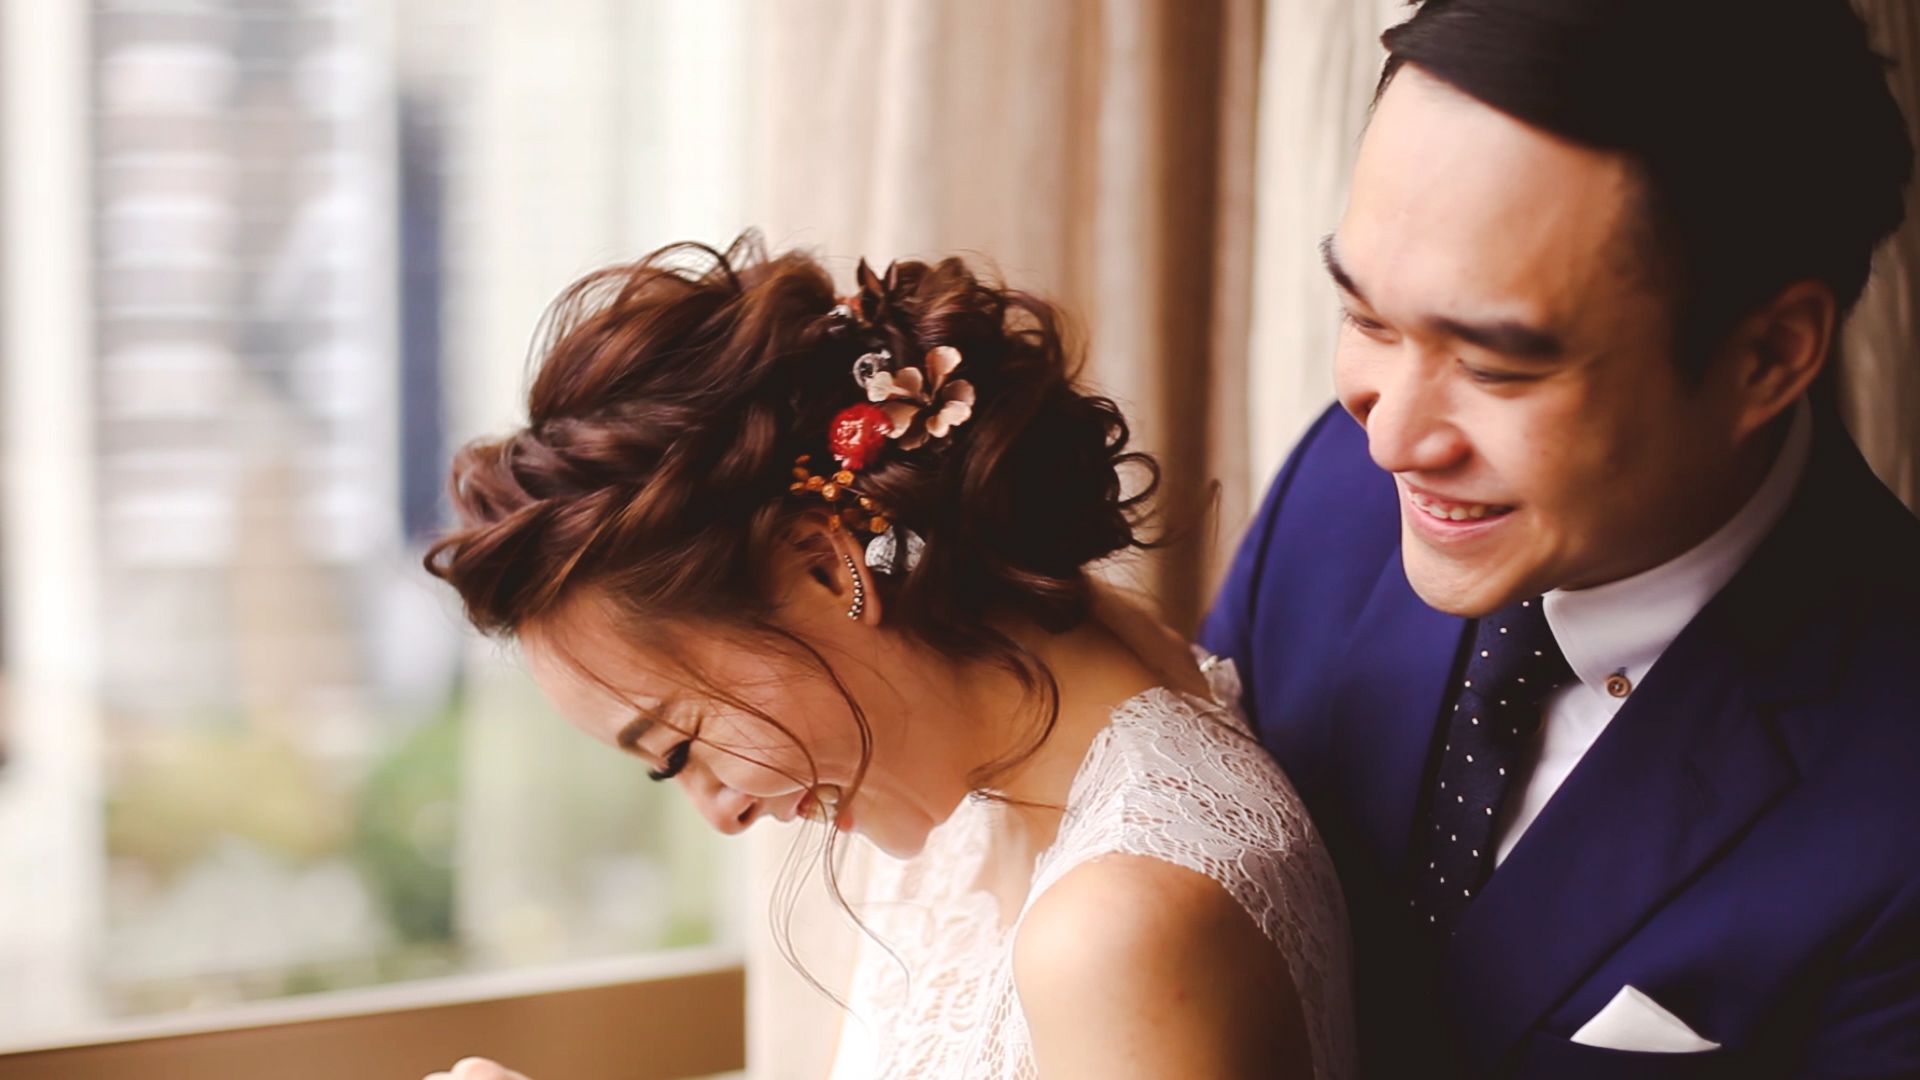 Wedding photographed by Substance Films